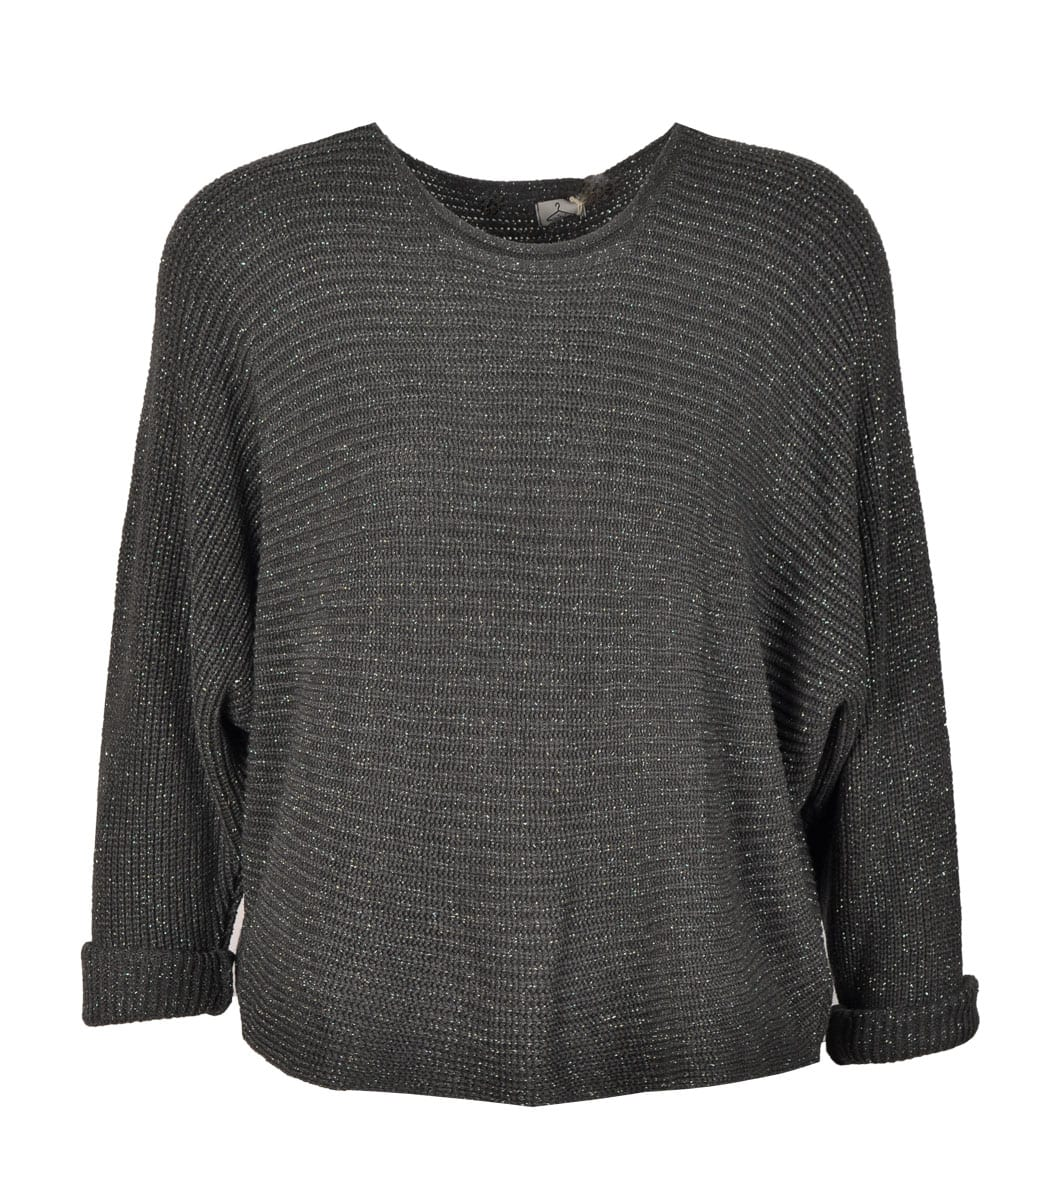 Batwing knit top